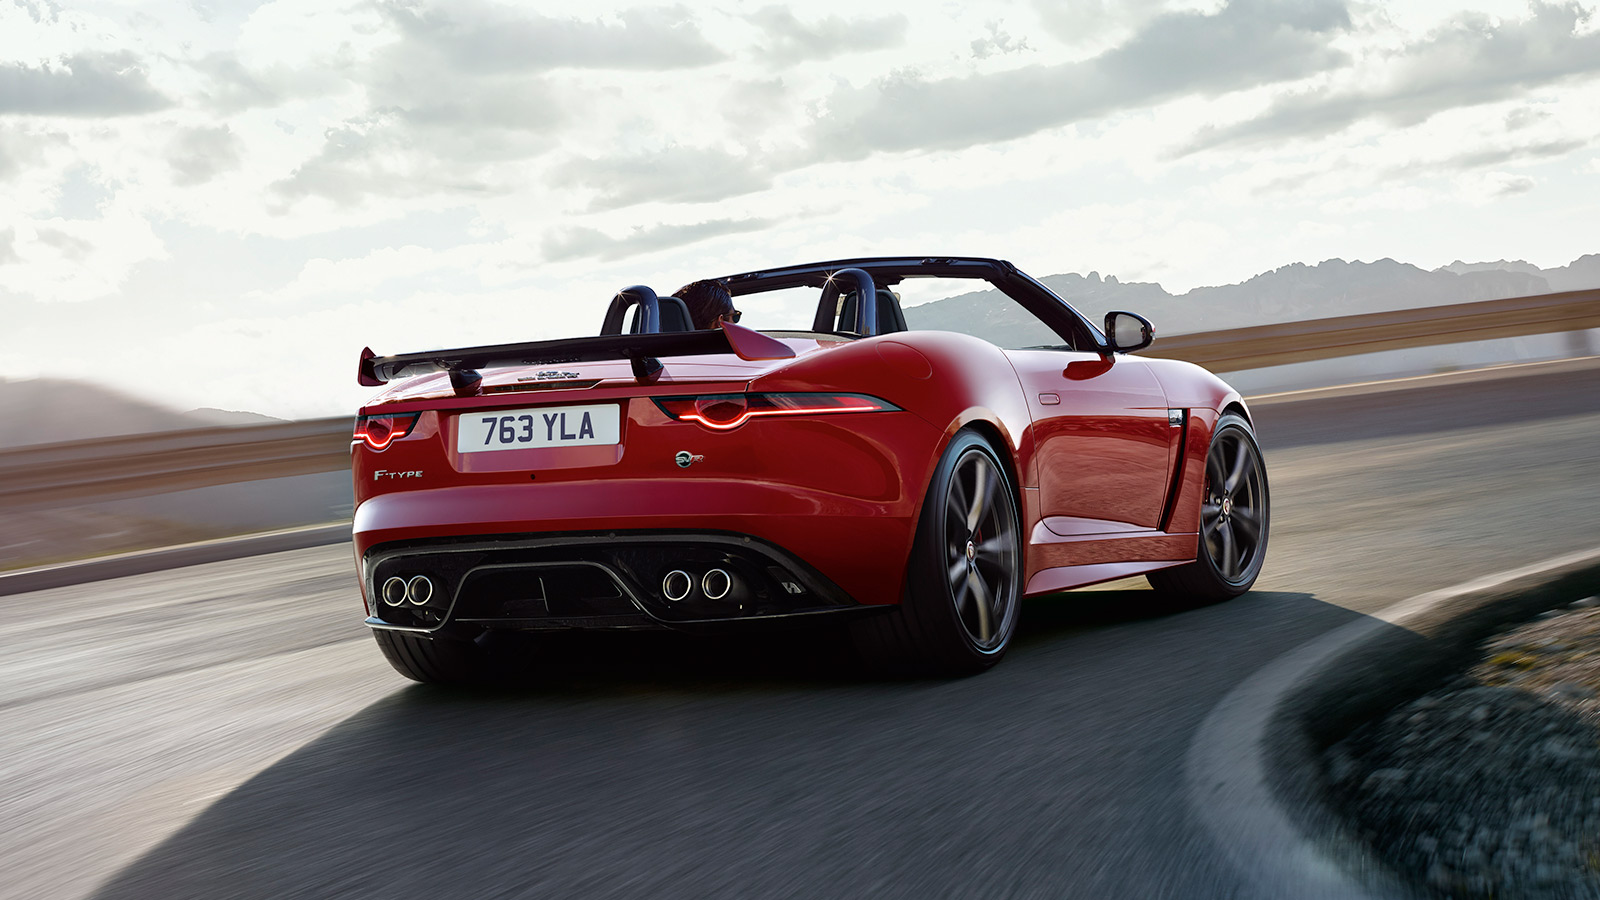 F-TYPE SVR Convertible in Caldera Red Driving Around Corner